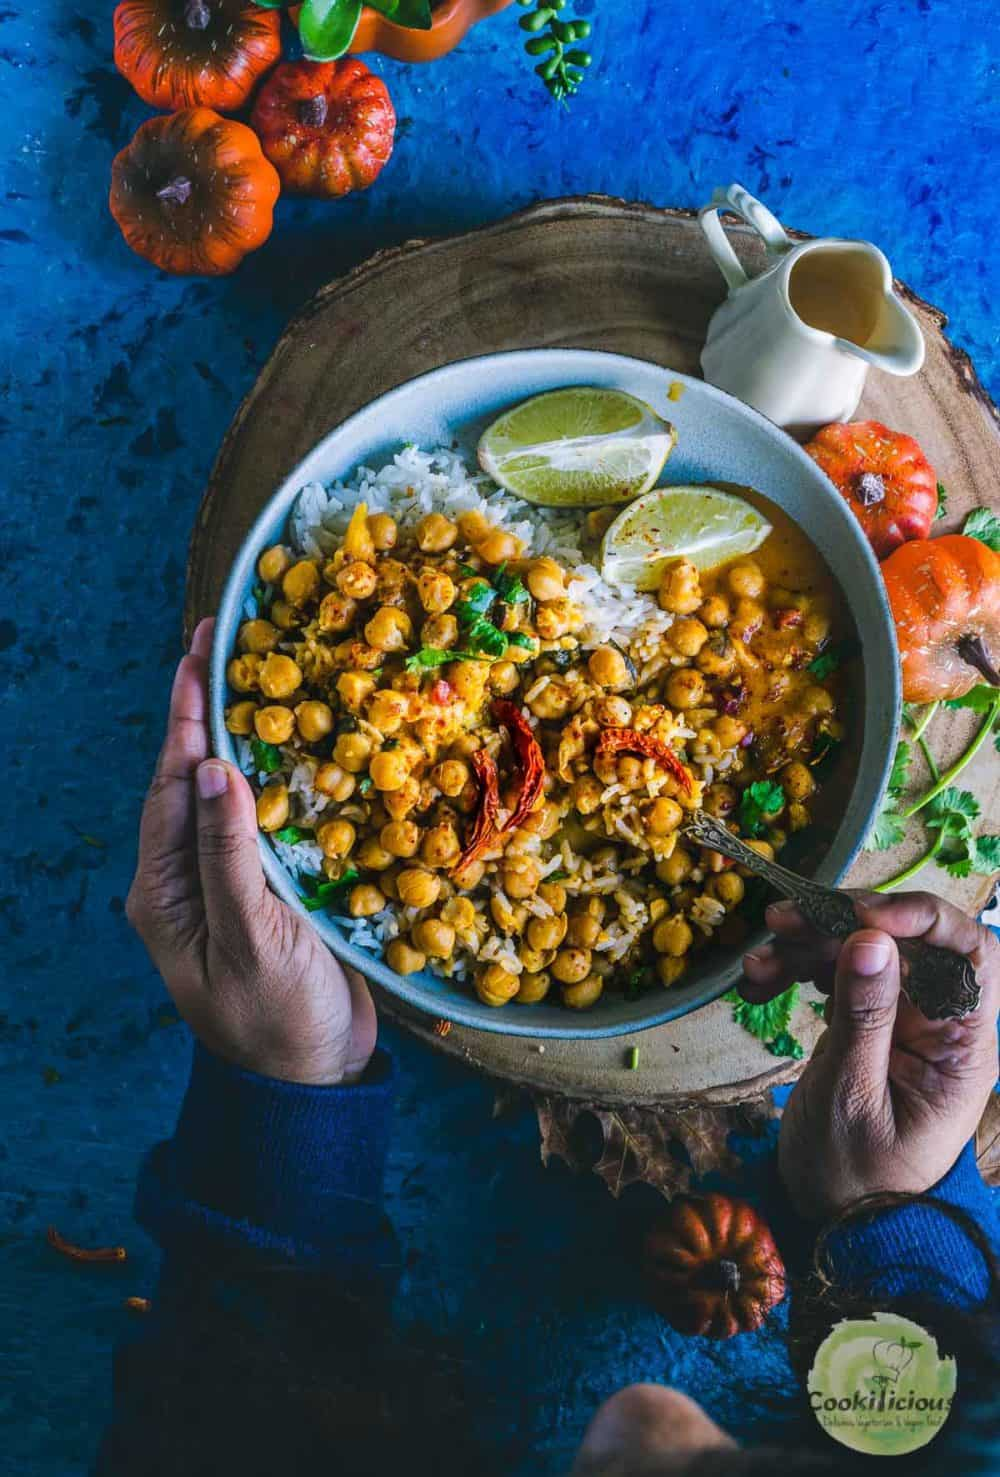 one hand holding the bowl while the other hand is holding a spoon and digging into the bowl filled with Instant Pot Butternut Squash Chickpea vegan Thai Curry